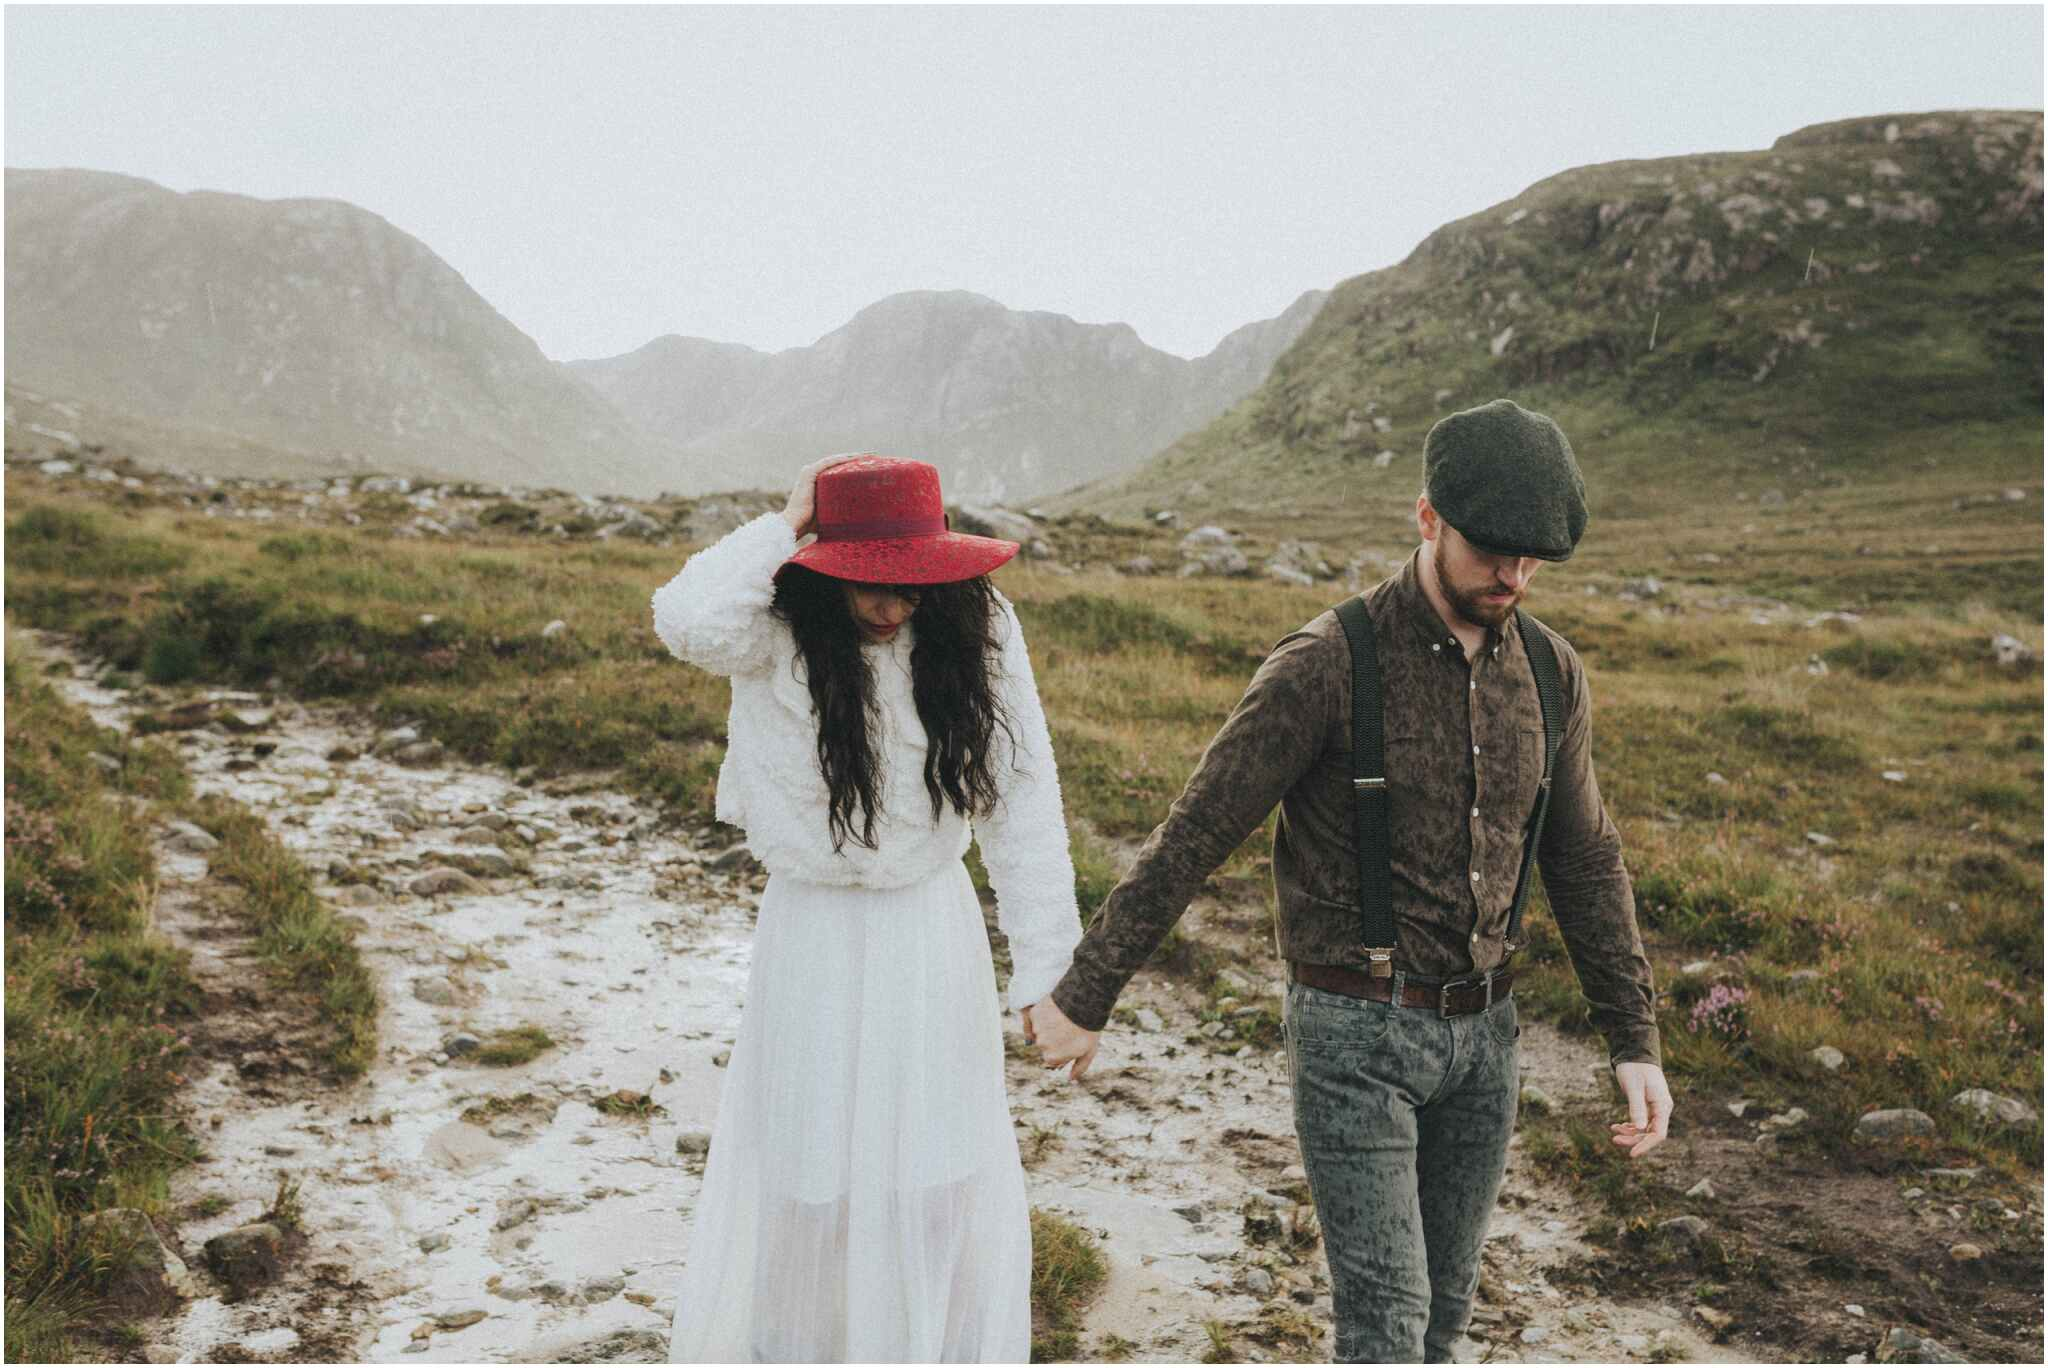 Rachel + David - Hiking Elopement in Muckish Mountain and Poisoned Glen, Donegal 41